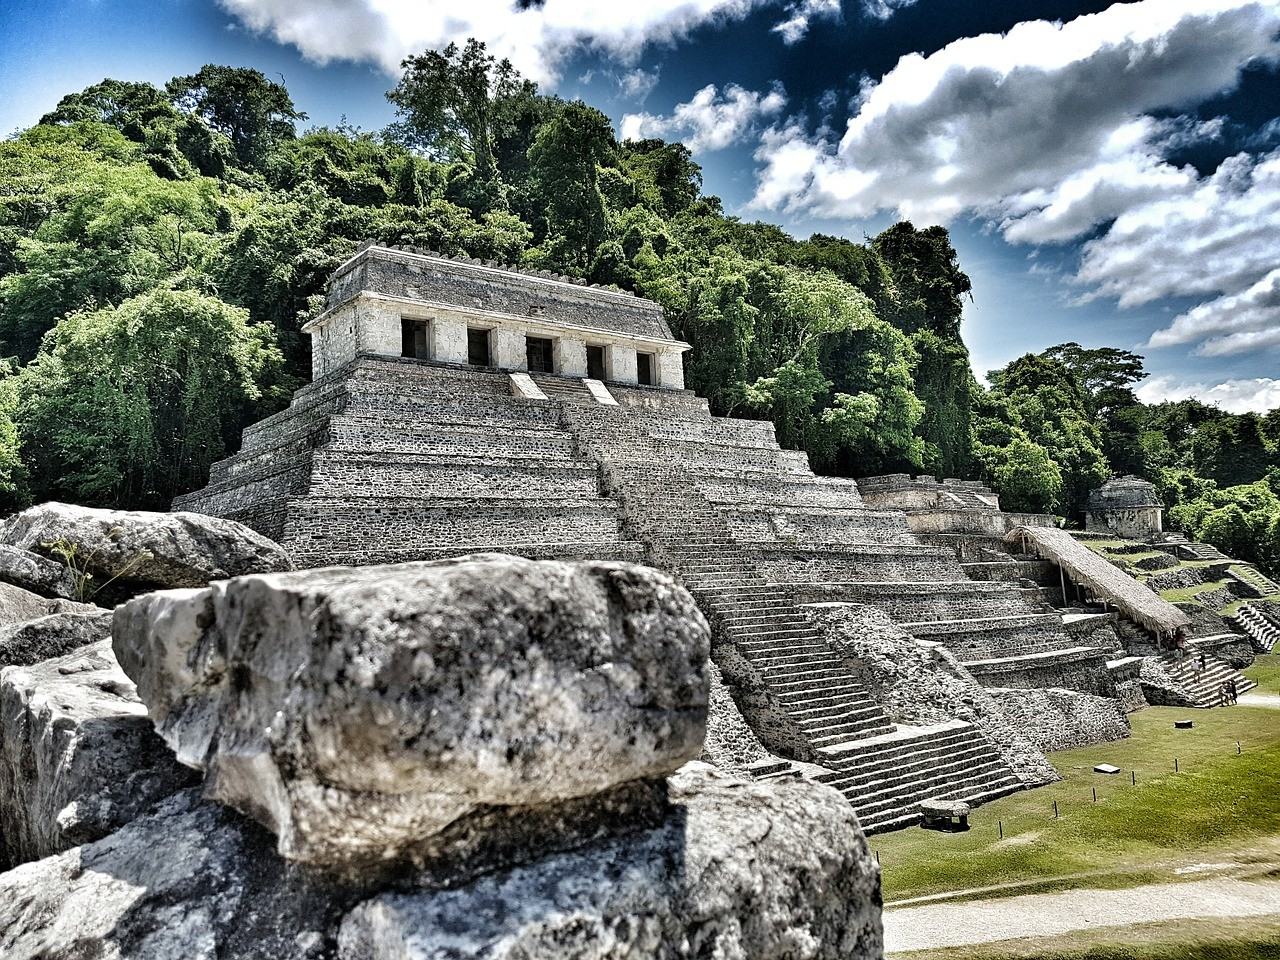 Mayan-Ruins-Mexico-The-Travel-Factory